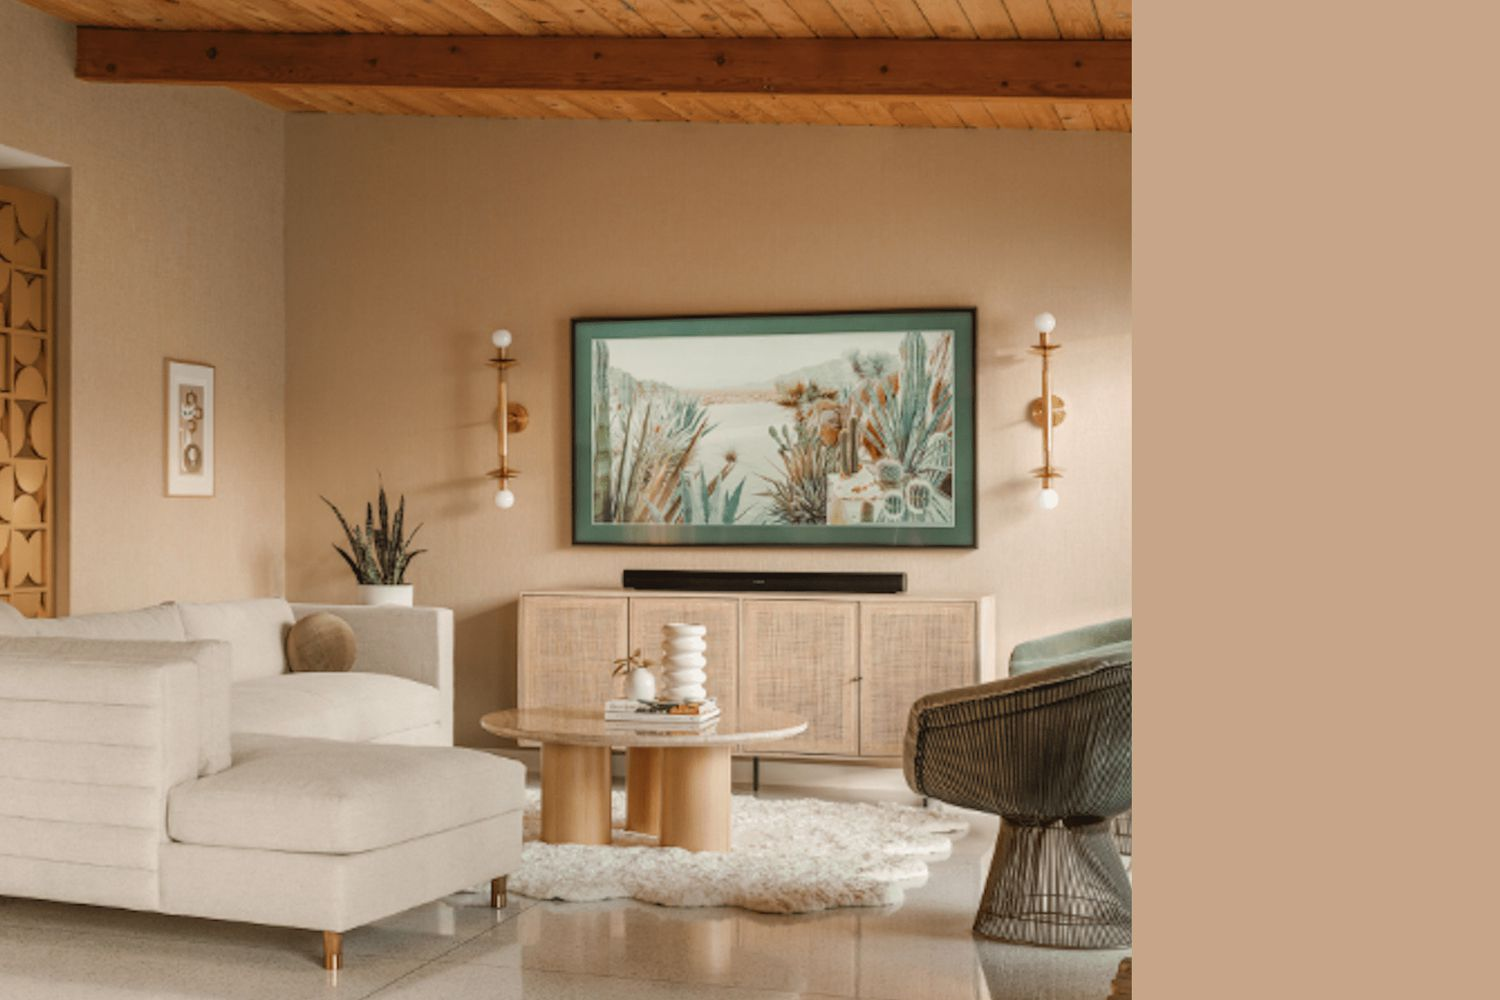 Interior painted a similar color to Totally Tan by Sherwin Williams